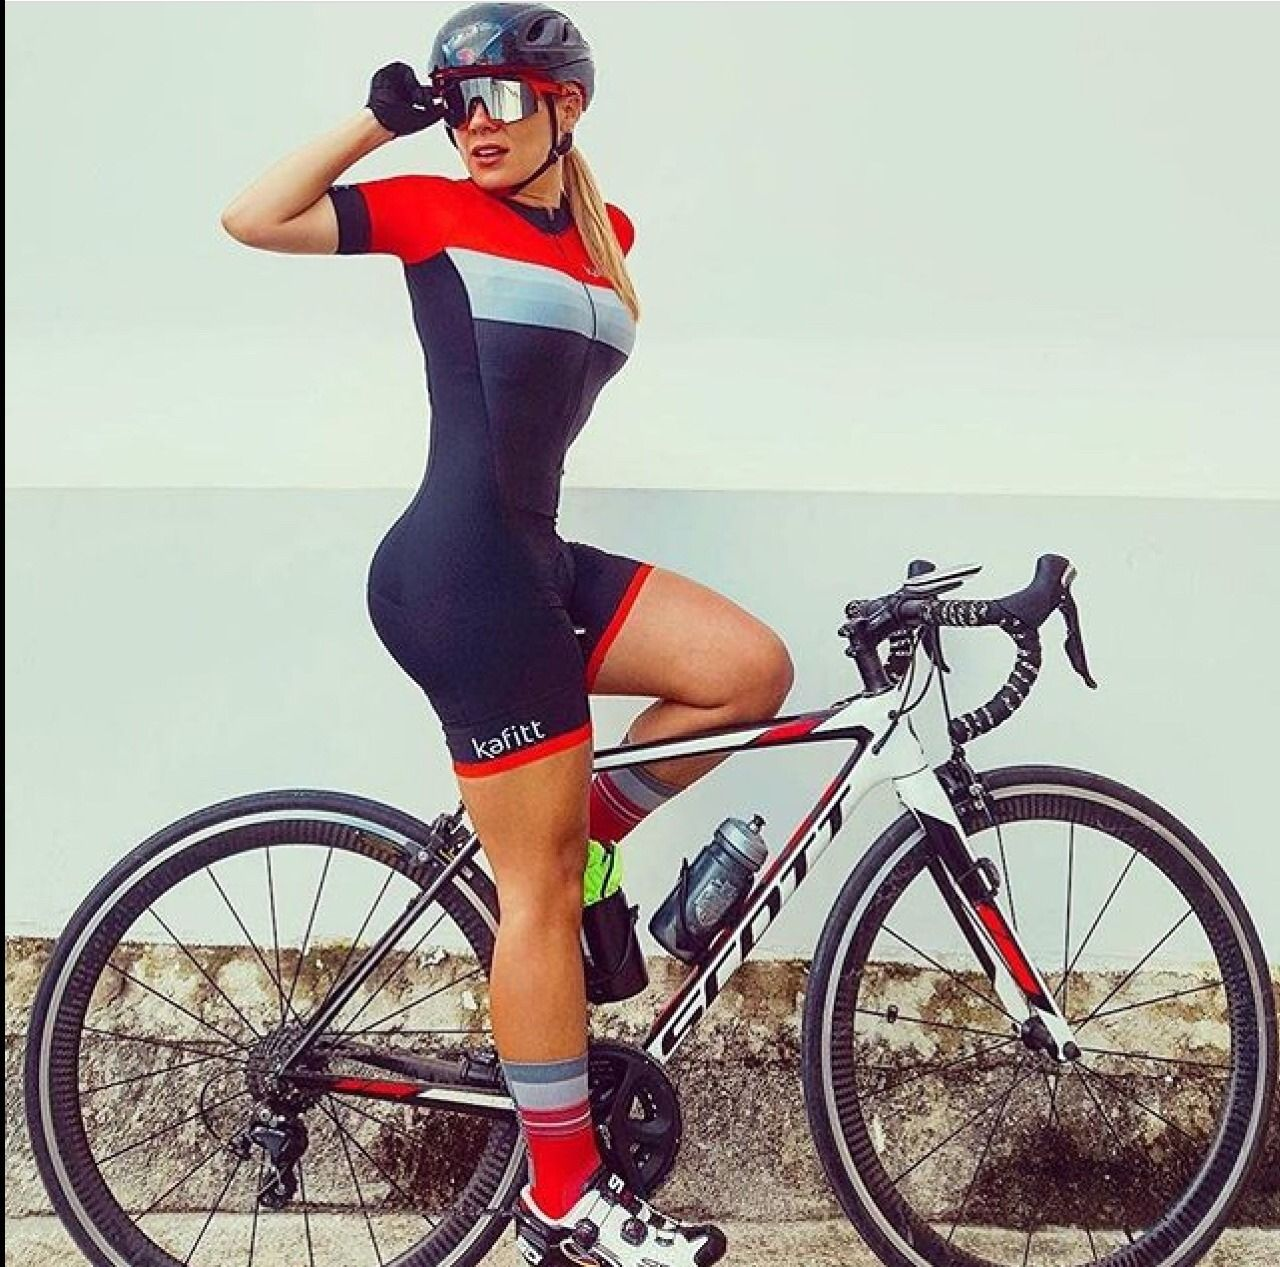 There Is Nothing Quite So Beautiful As A Women With A Bike Cycling Clothing And Equipment Bicycle Girl Cycling Women